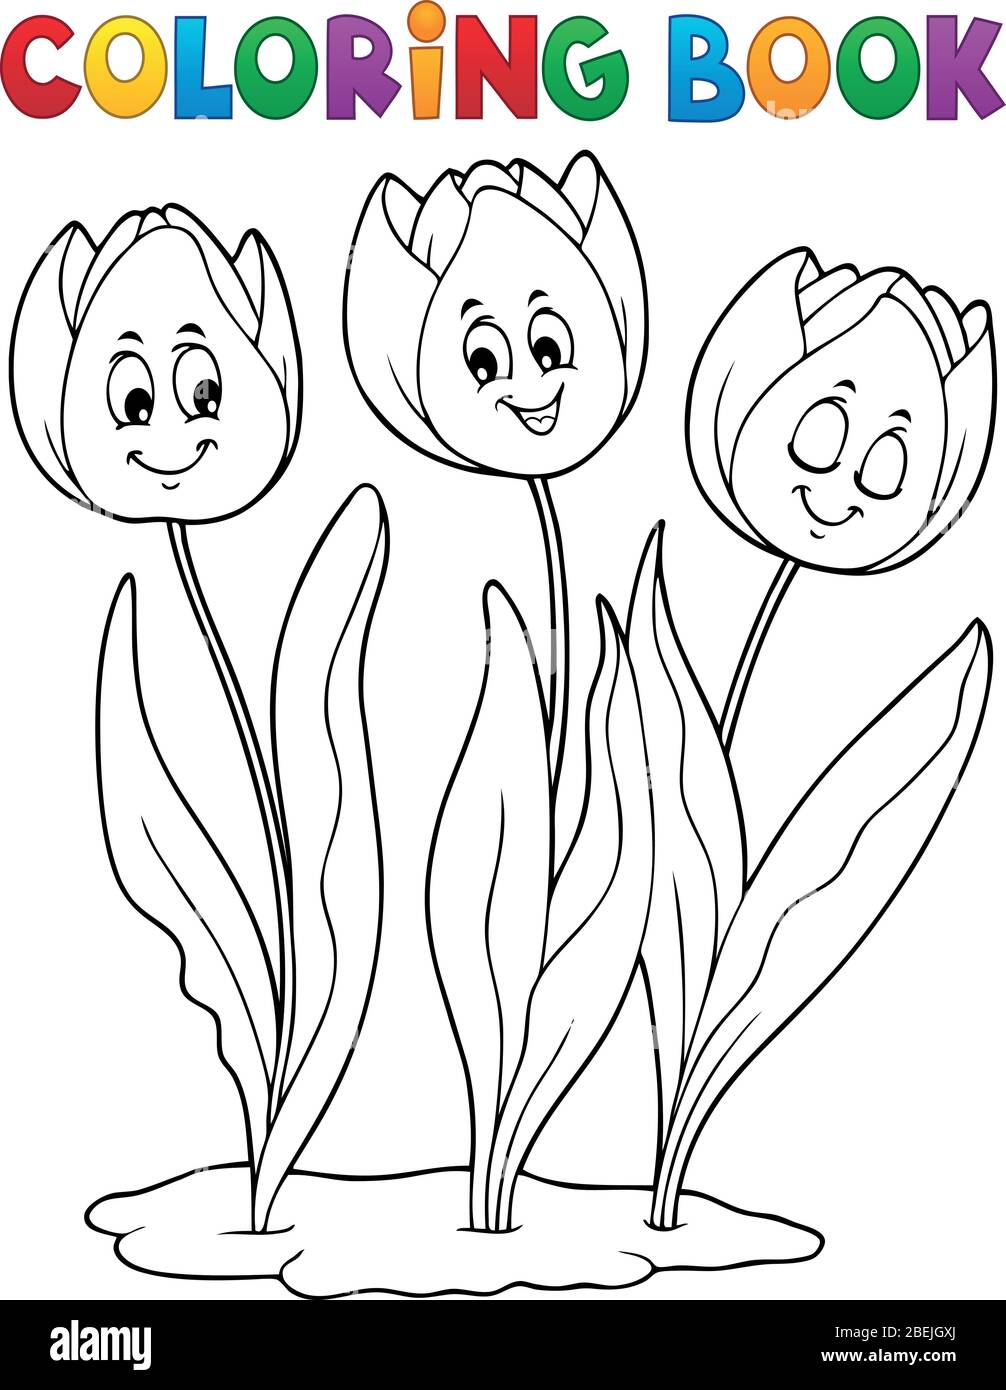 Coloring Book Tulip Flower Image 1 Eps10 Vector Illustration Stock Vector Image Art Alamy